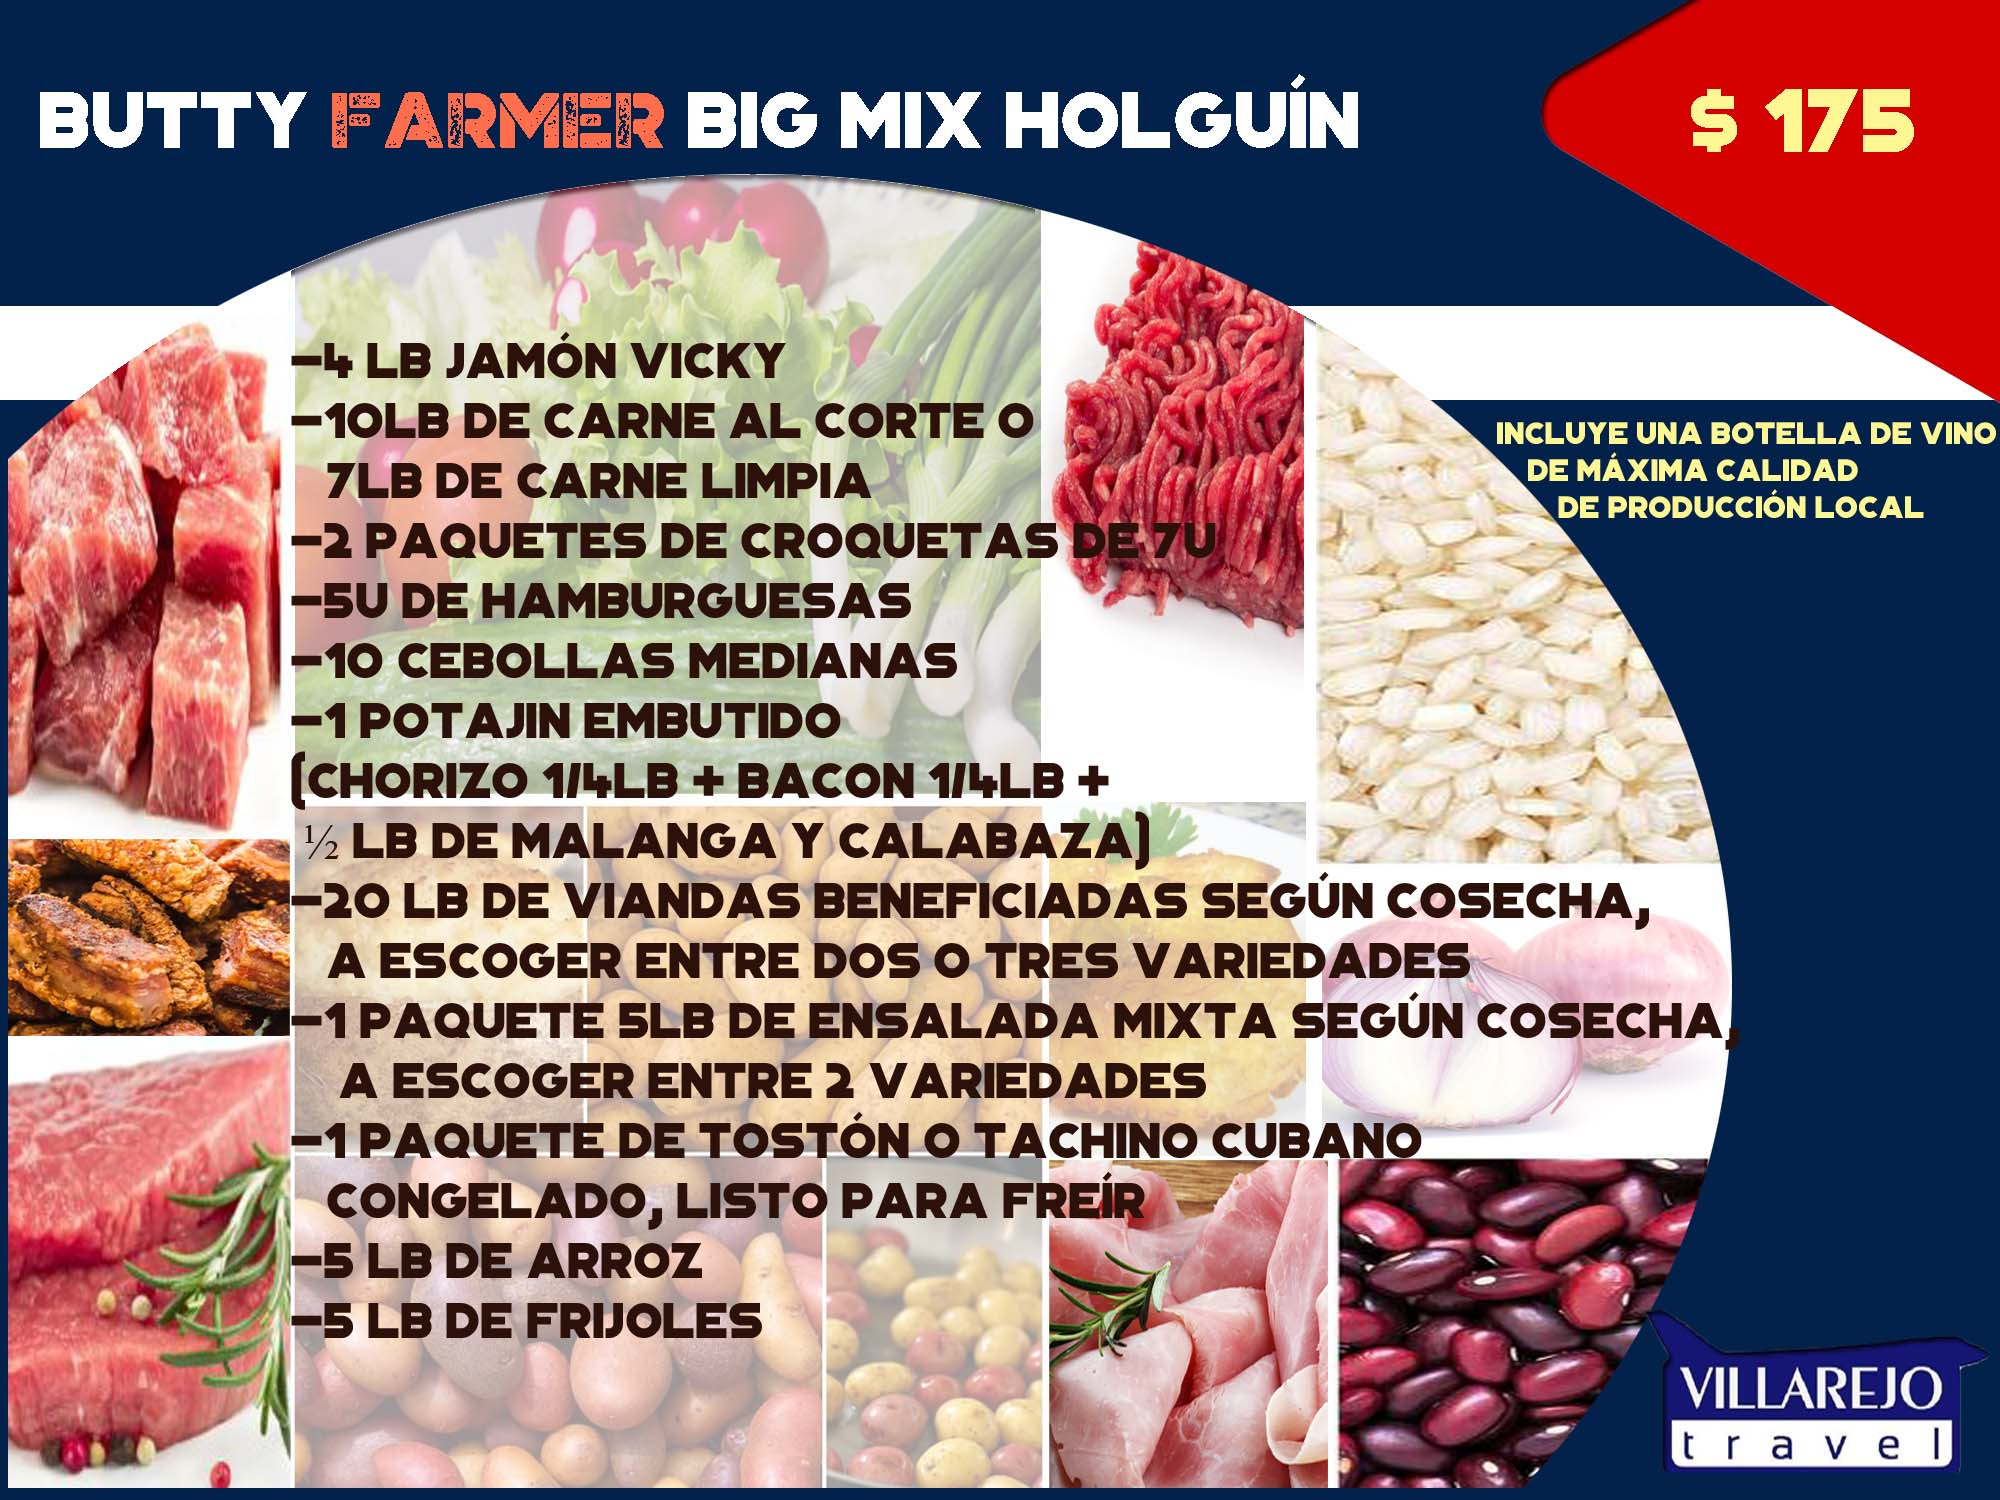 Butty Farmer Big Mix Holguín